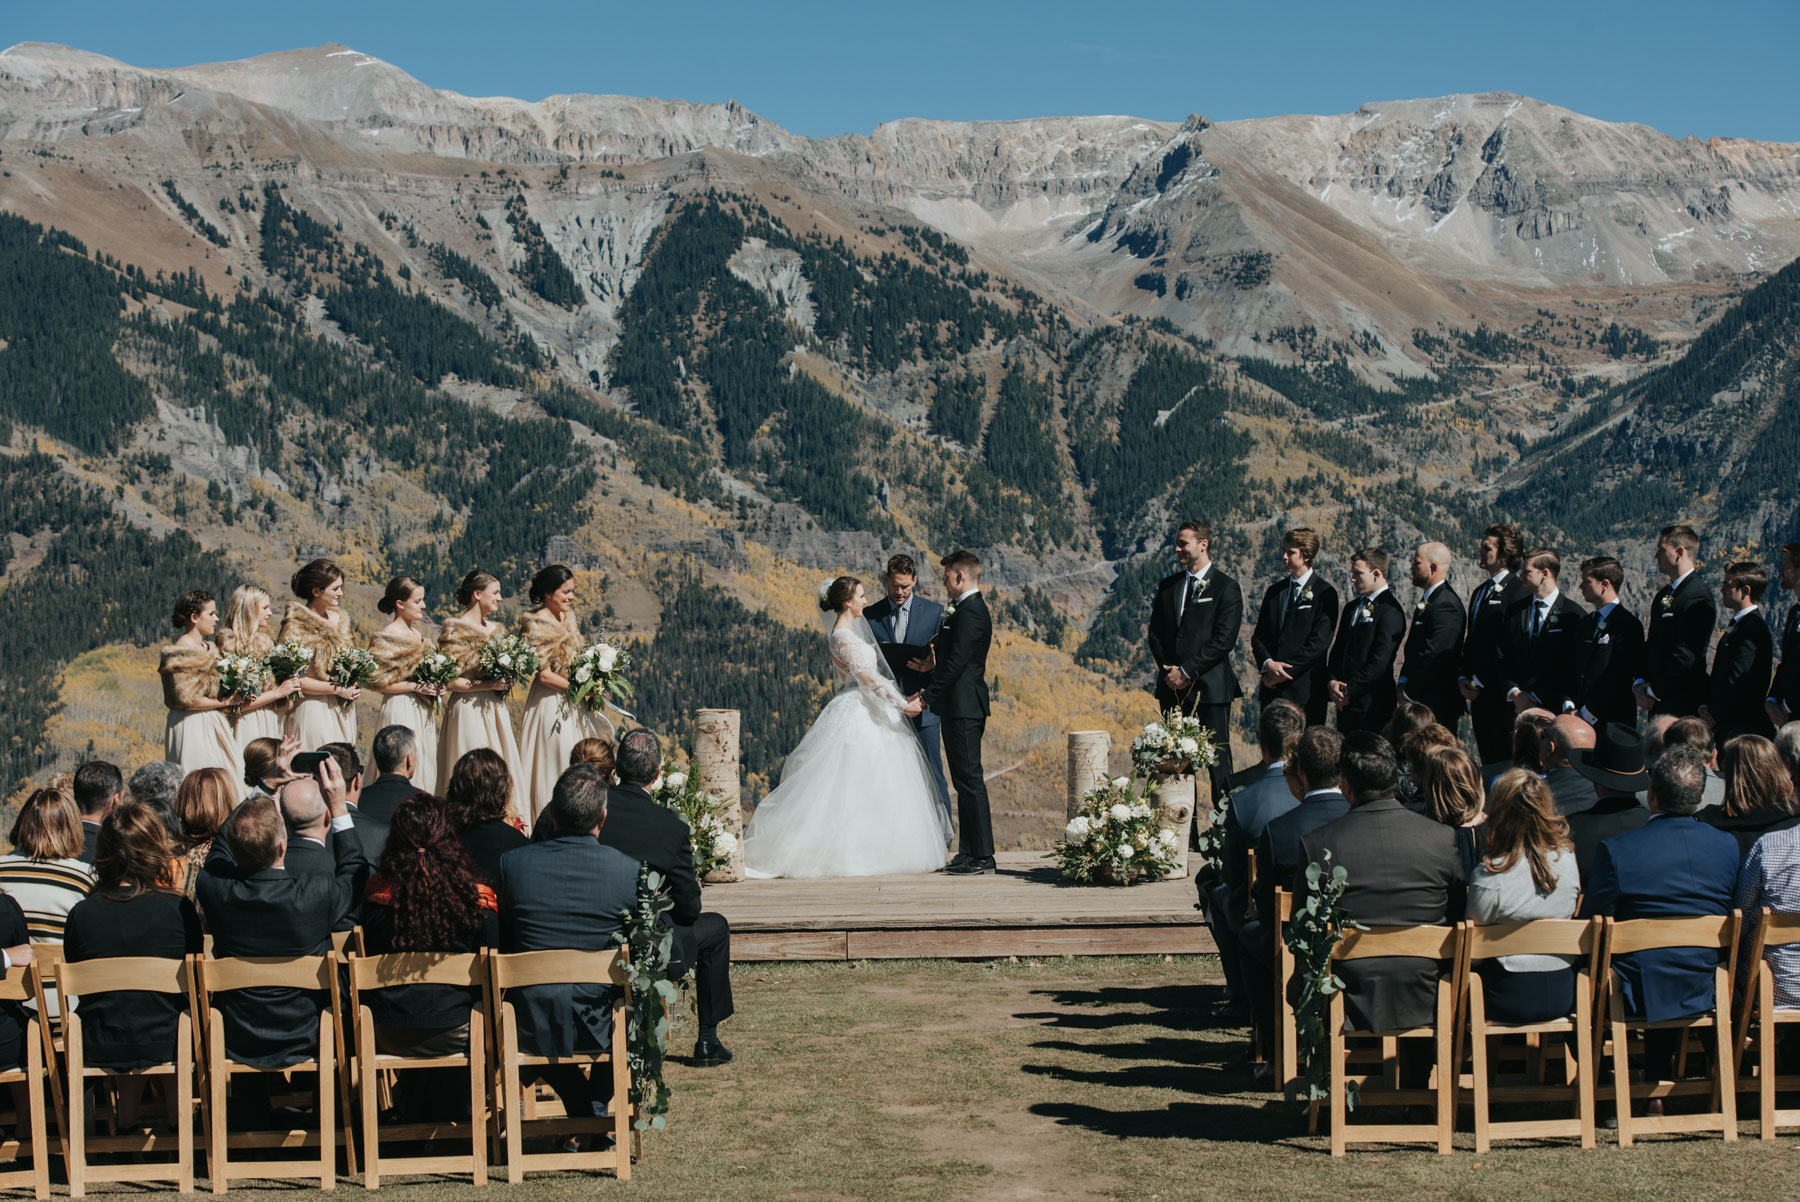 Elyse and Stefan during their amazing San Sophia Overlook Wedding in Telluride, Colorado. They chose to have a destination wedding in Telluride, and the views were epic!